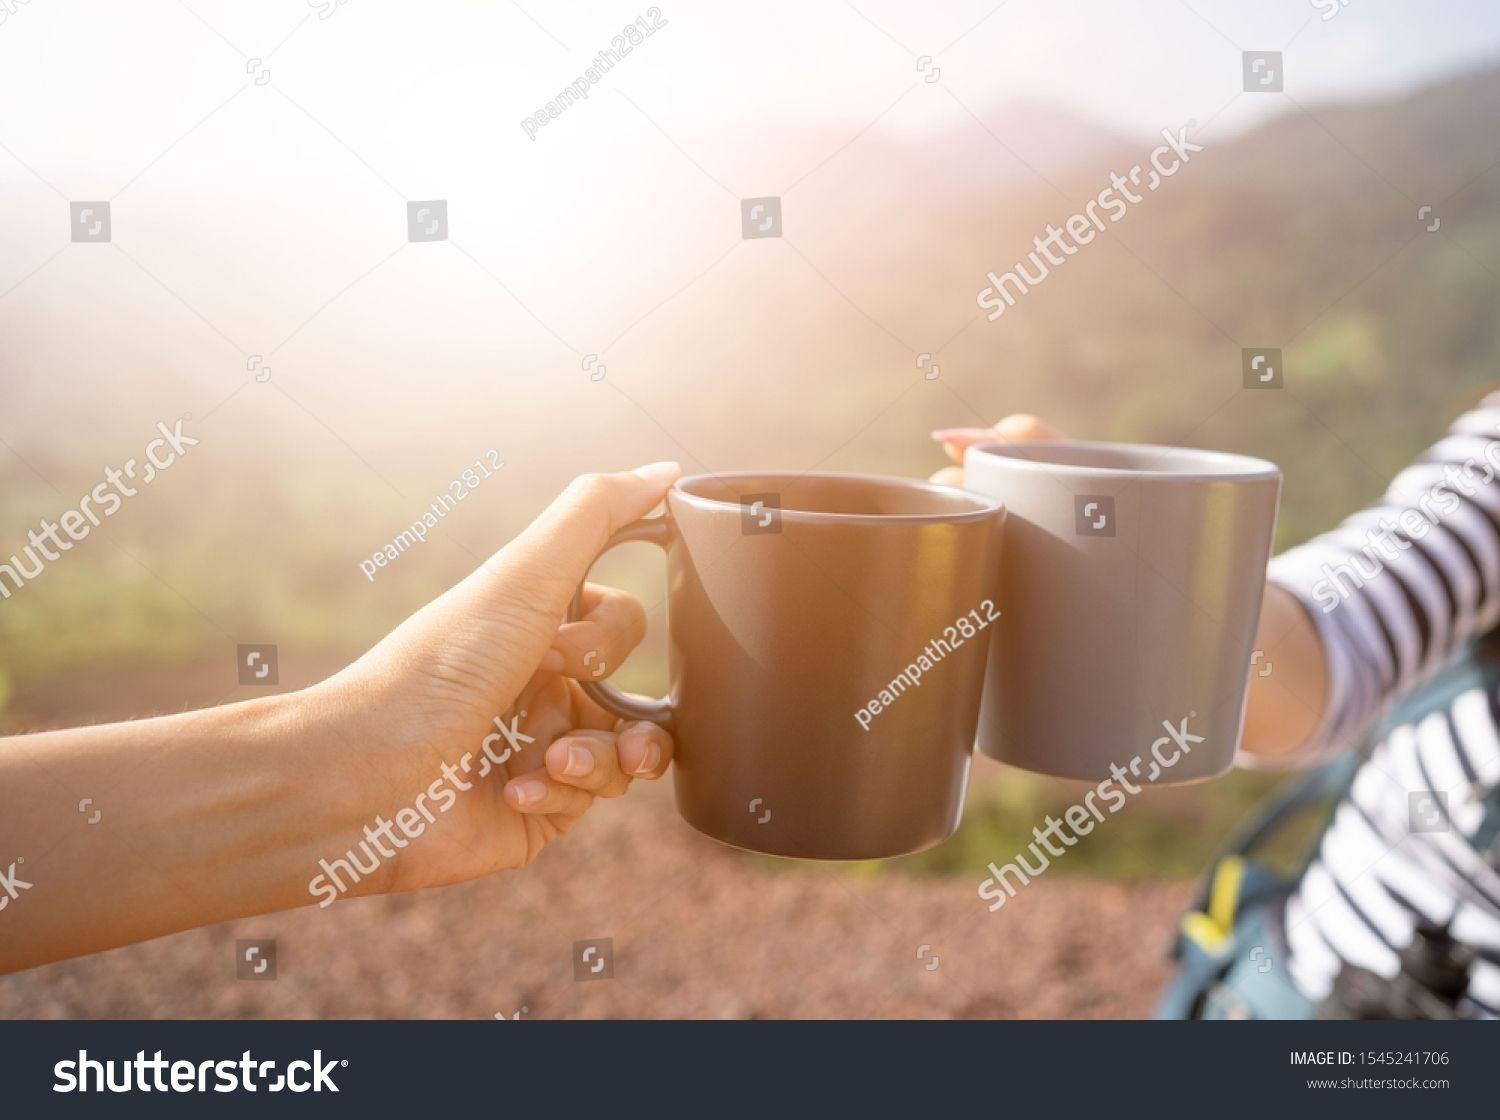 Closeup hands holding coffee cup drinking coffee or tea